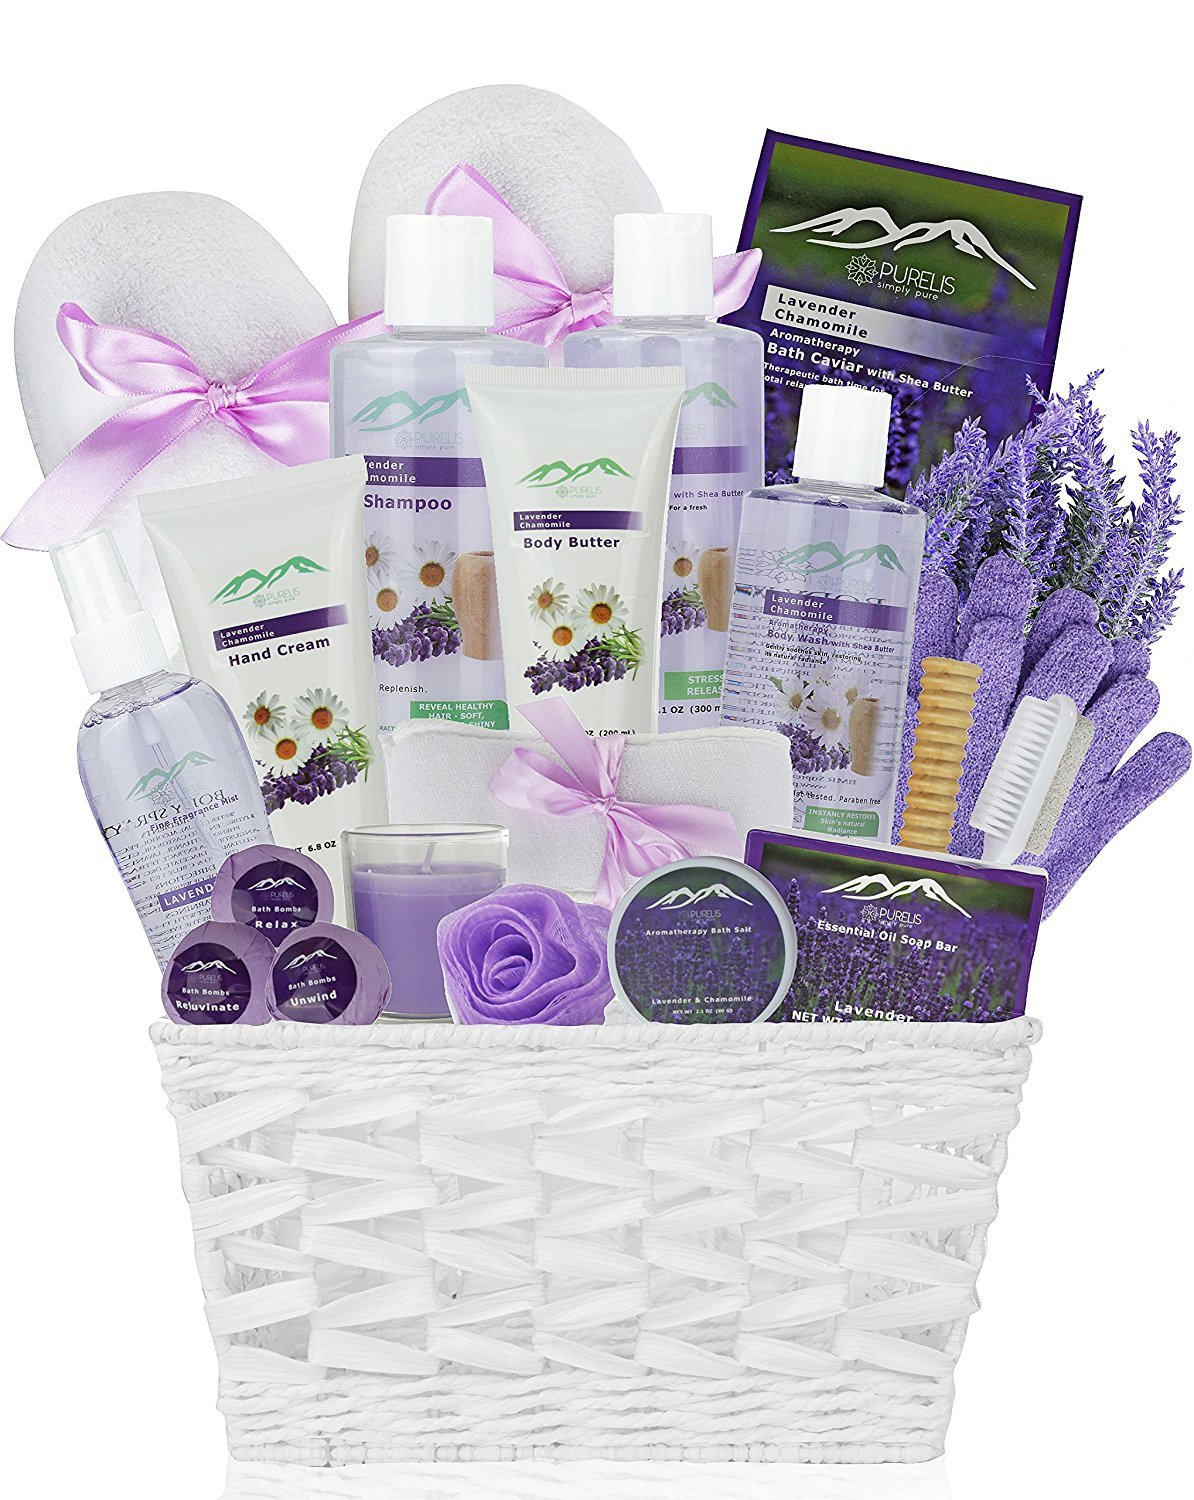 Chamomile & Lavender Spa Gift Baskets - #1 Natural Spa Kit for Women & Men! Beauty Basket Home Spa Basket 20 pc Set Includes Body Lotion, Bath Bombs & More! Spa Gifts for Her.